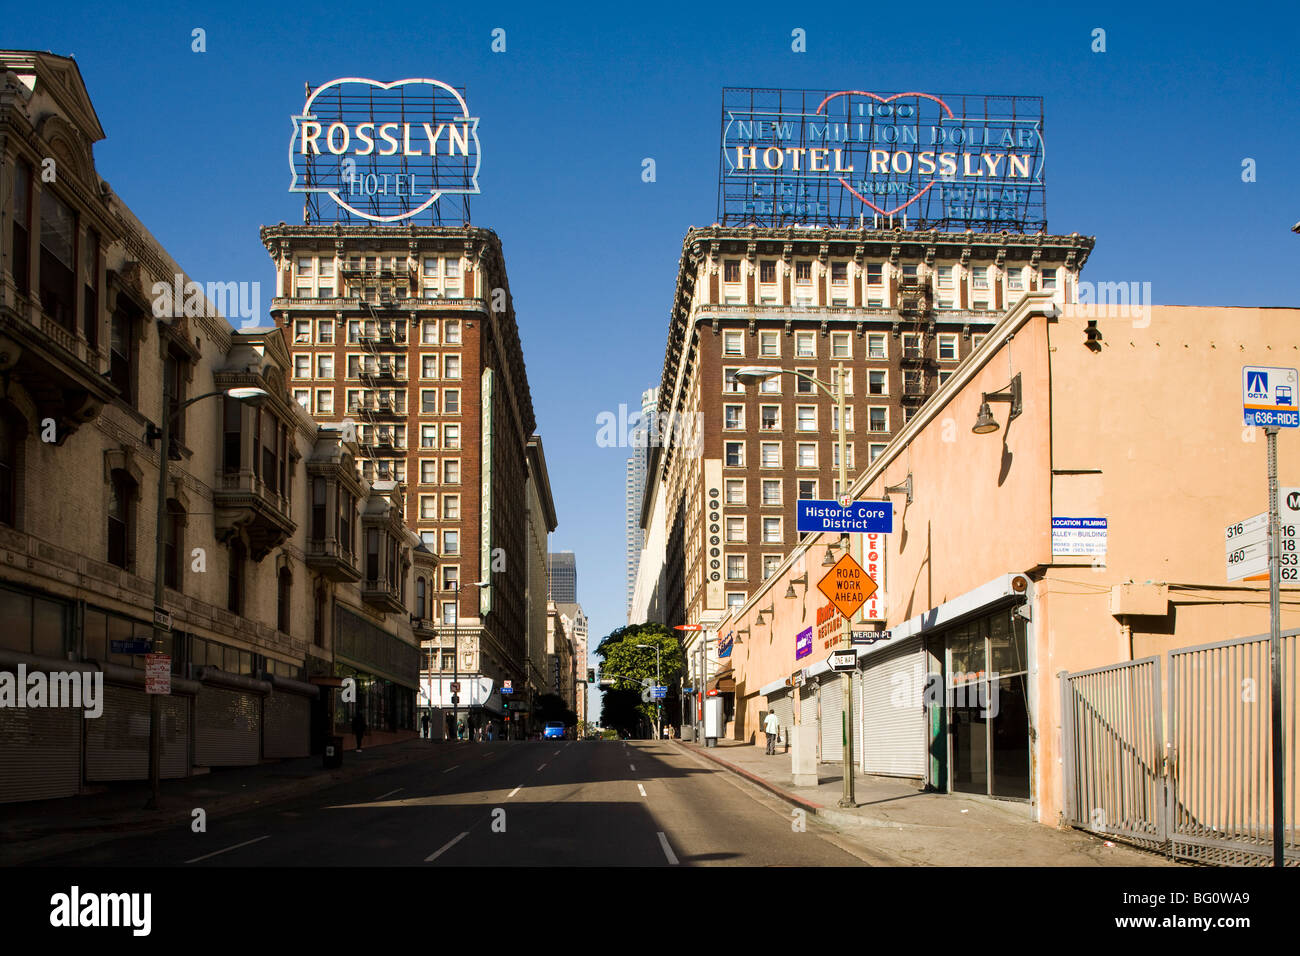 Rosslyn Hotel, downtown, Los Angeles, California, United States of America - Stock Image